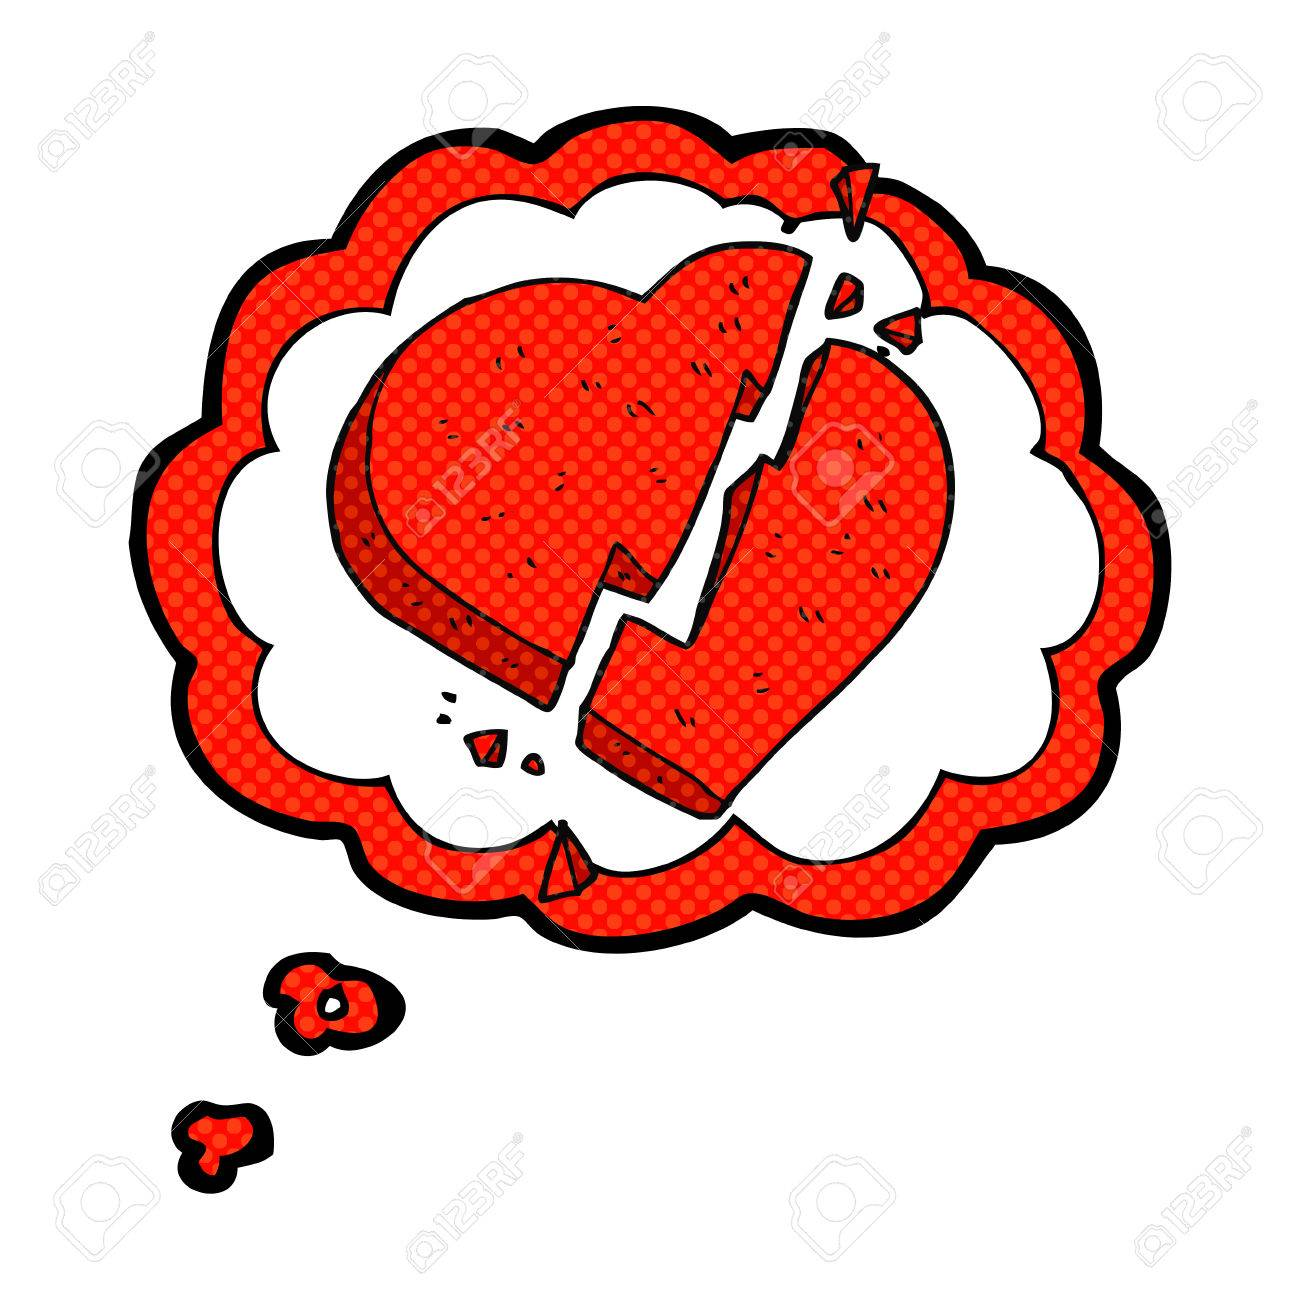 Freehand Drawn Thought Bubble Cartoon Broken Heart Symbol Royalty